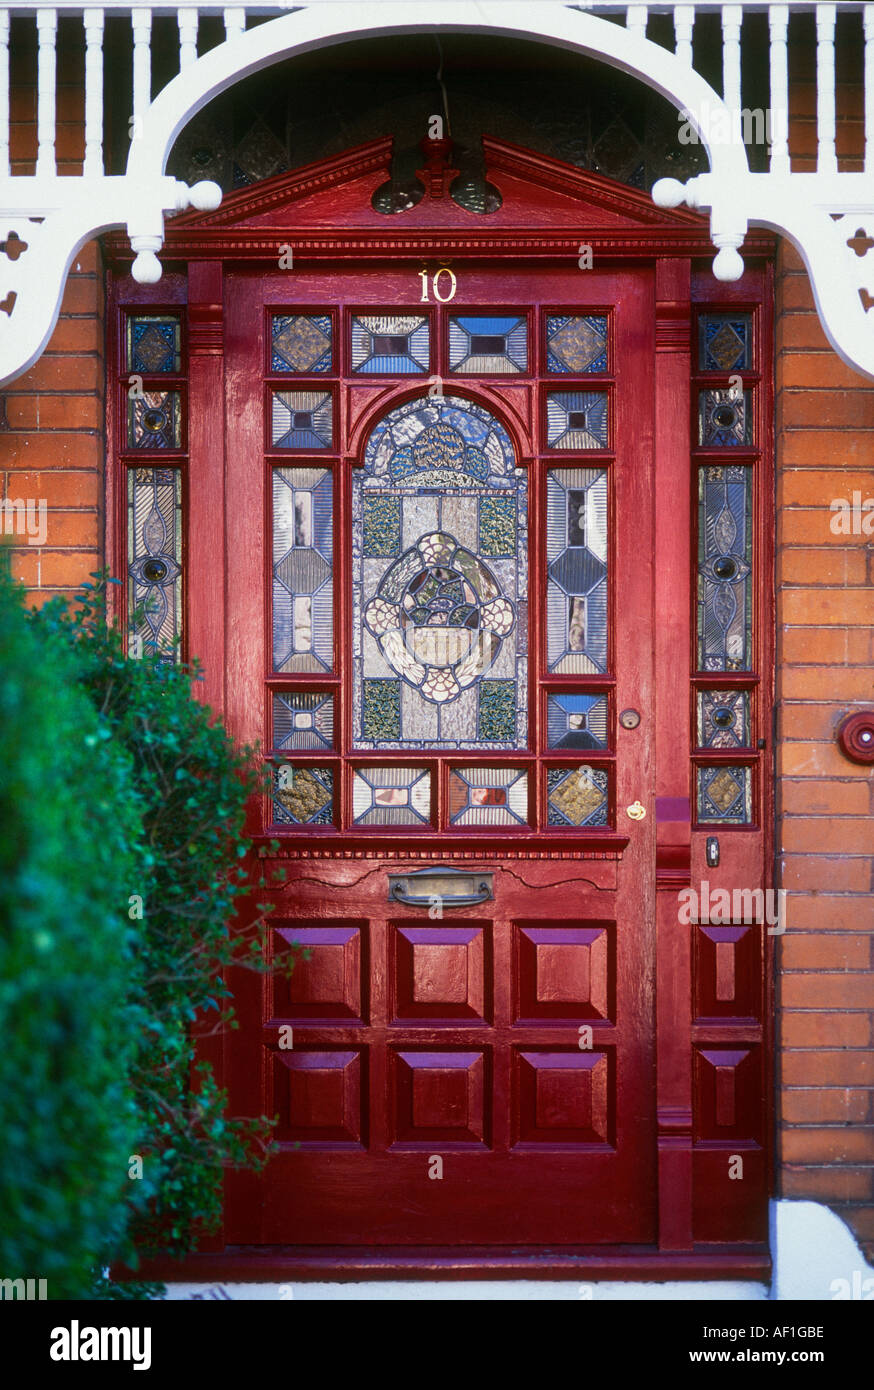 Red Door With Glass : Exterior stained glass red front door british housing